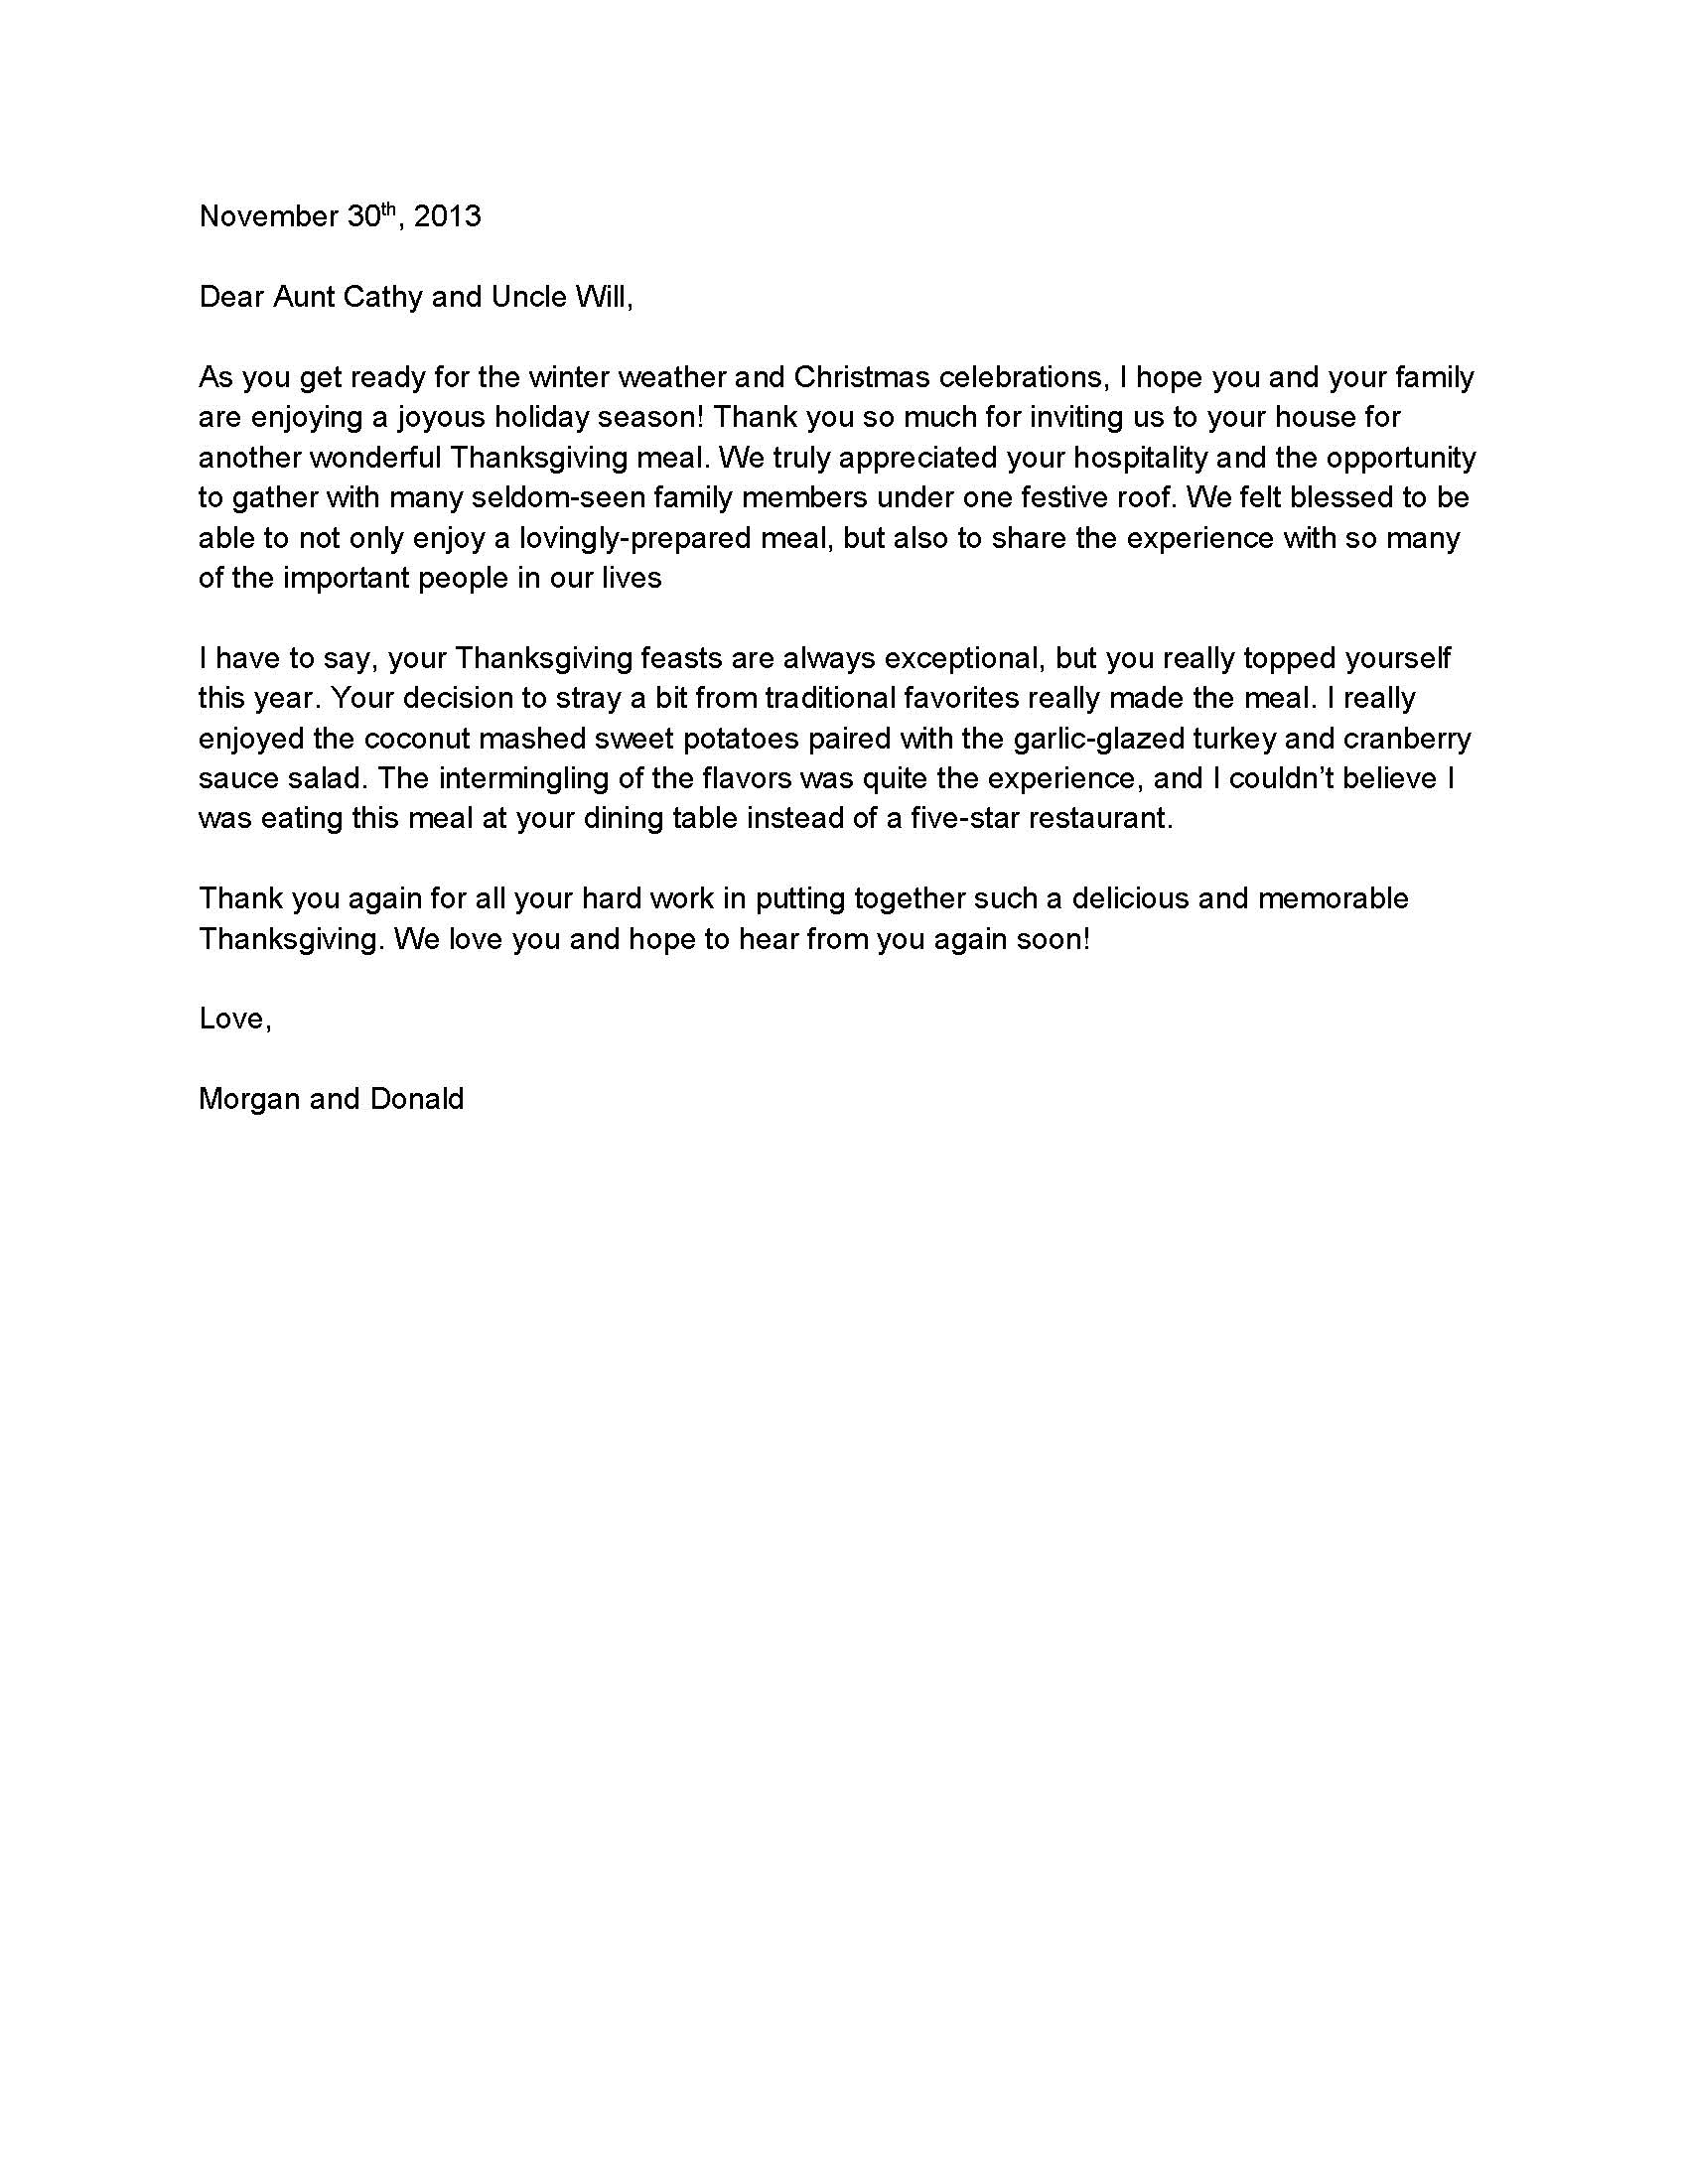 Fundraising Thank You Letter Template - Personal Thank You Letter Template Acurnamedia